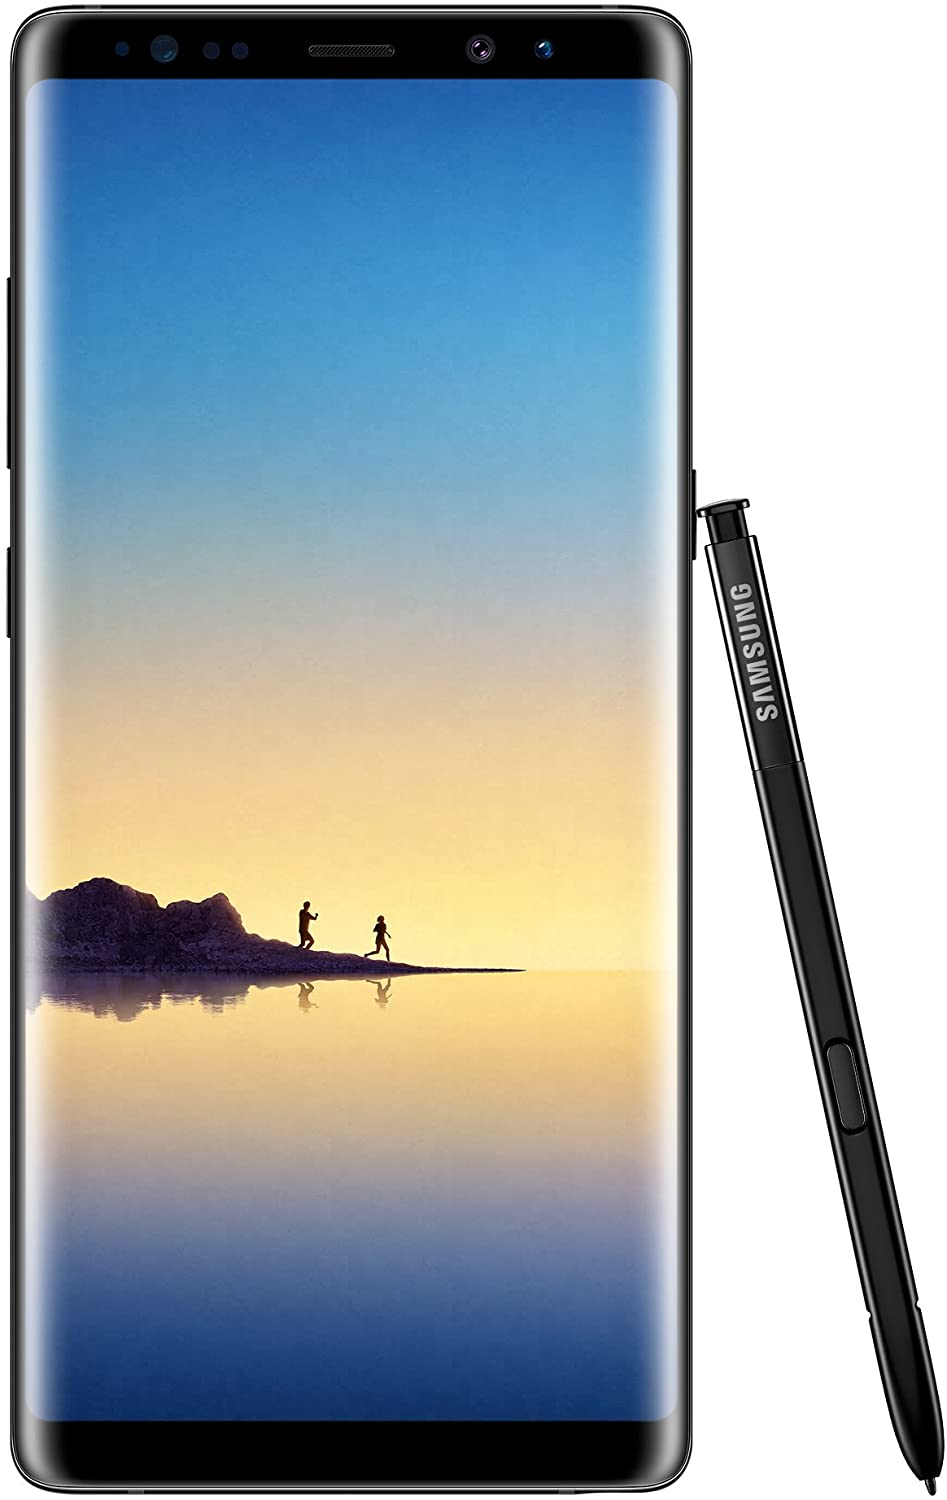 Save $59.99 on Samsung Galaxy Note8 64GB Unlocked Android Phone